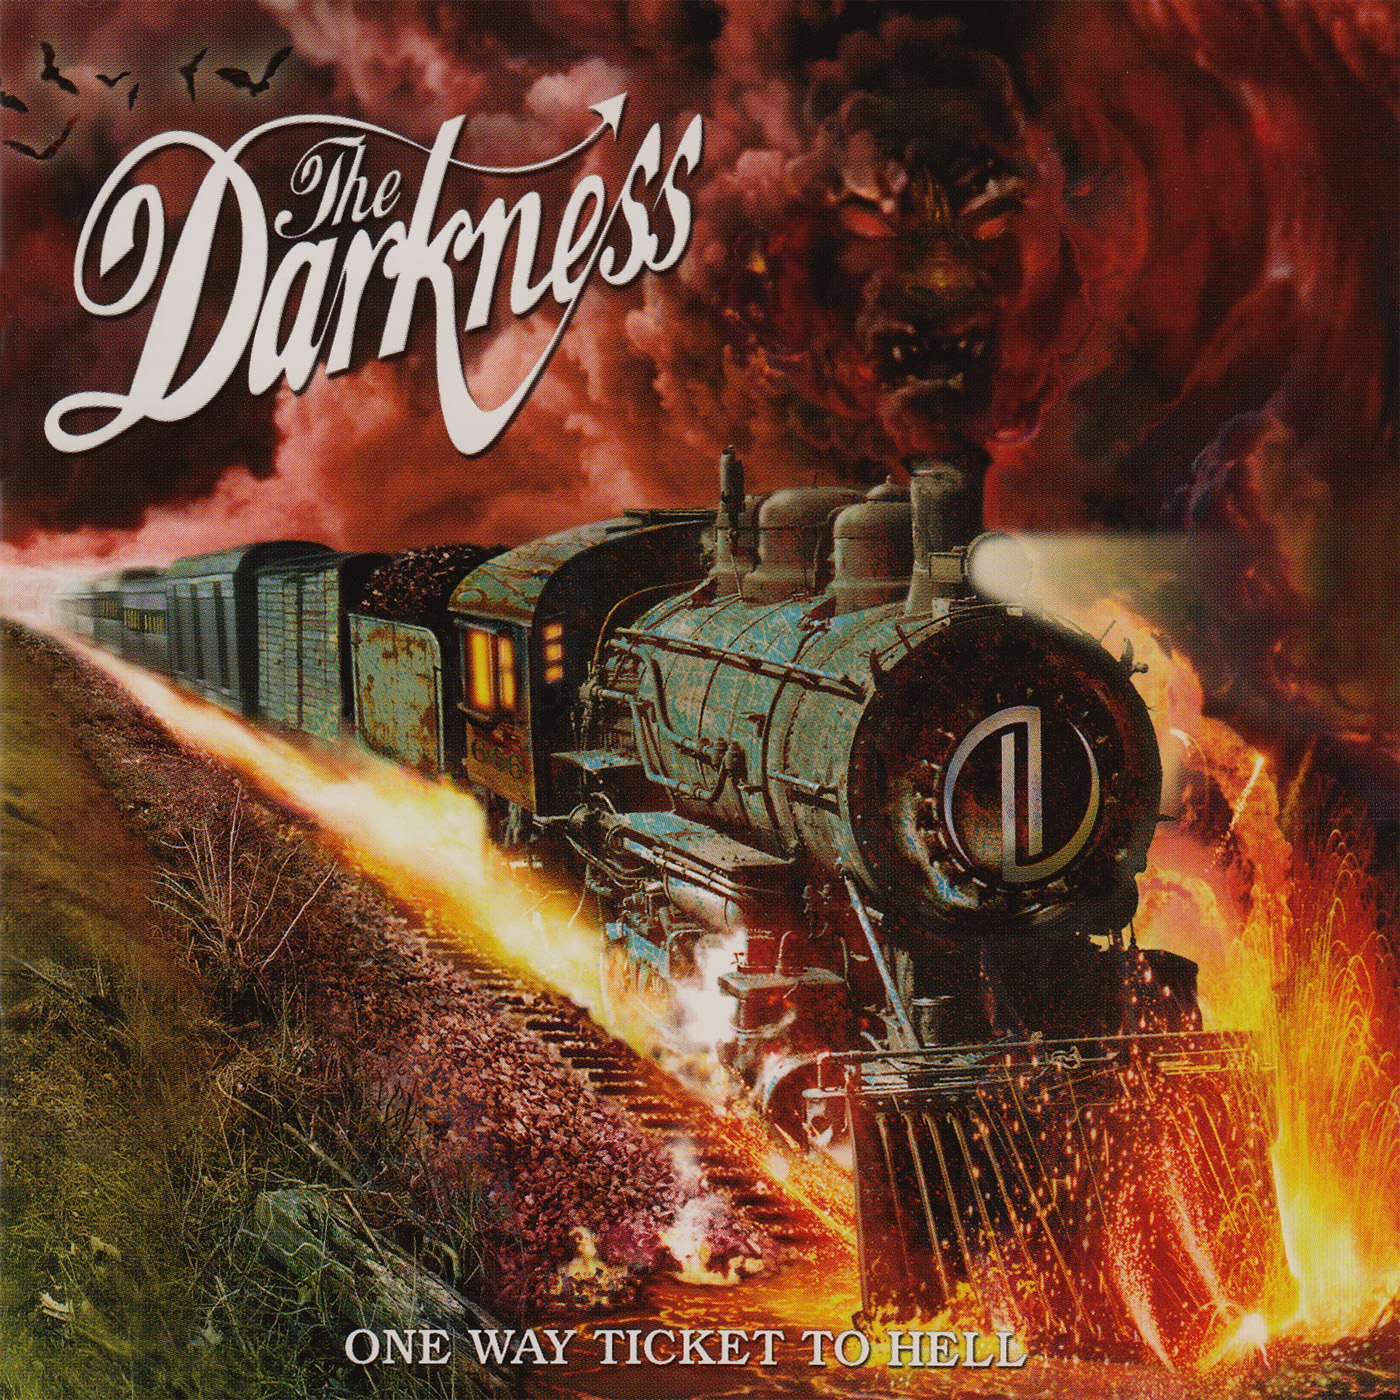 The Darkness - One Way Ticket To Hell (And Back)